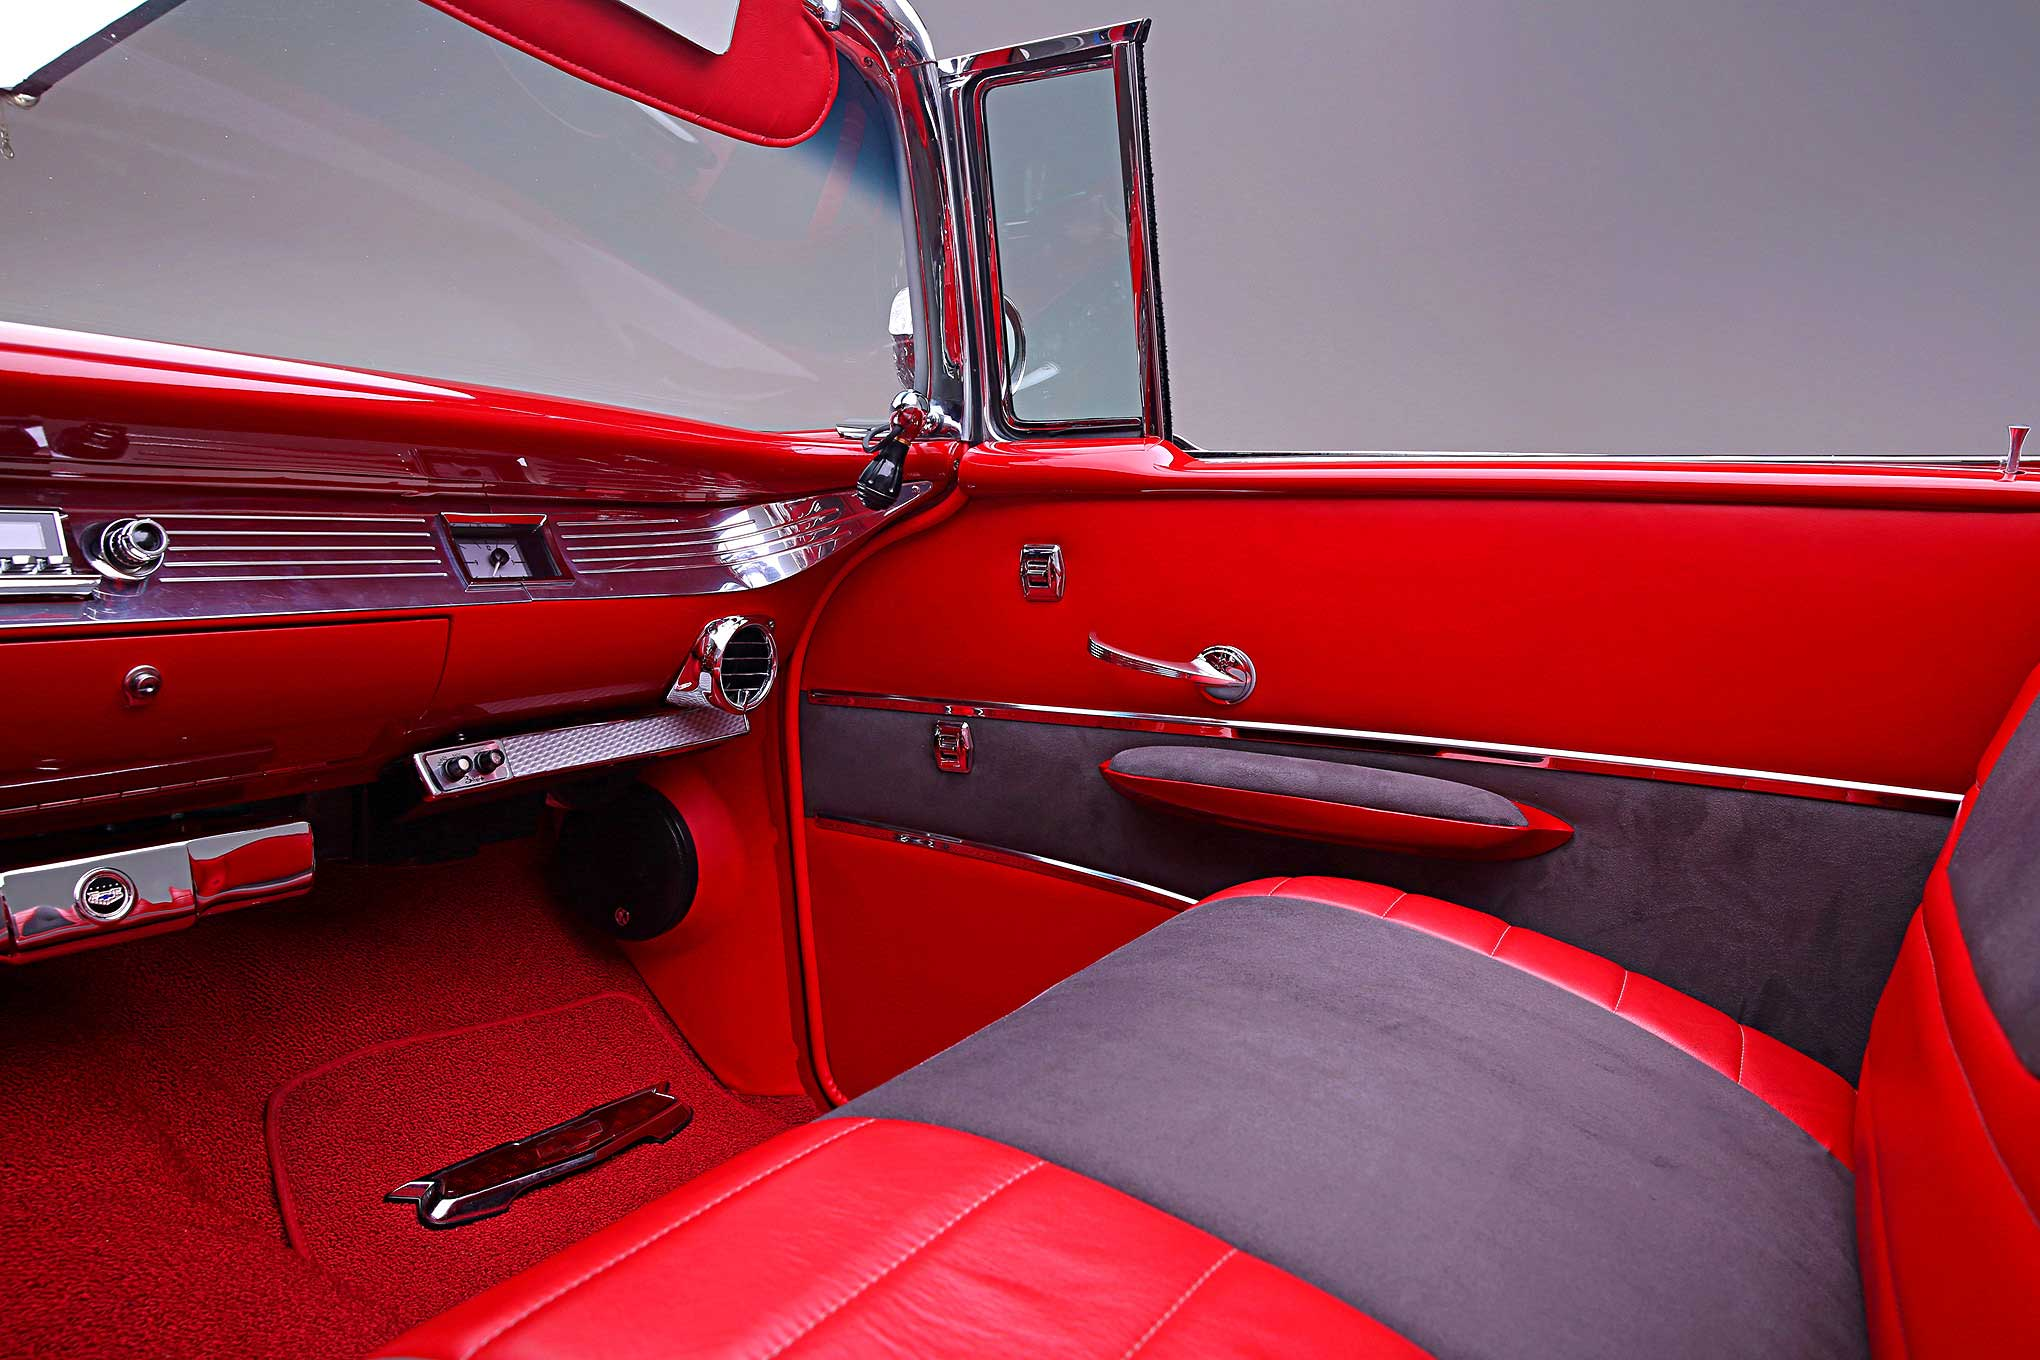 1957 chevrolet bel air red leather gray suede interior lowrider. Black Bedroom Furniture Sets. Home Design Ideas